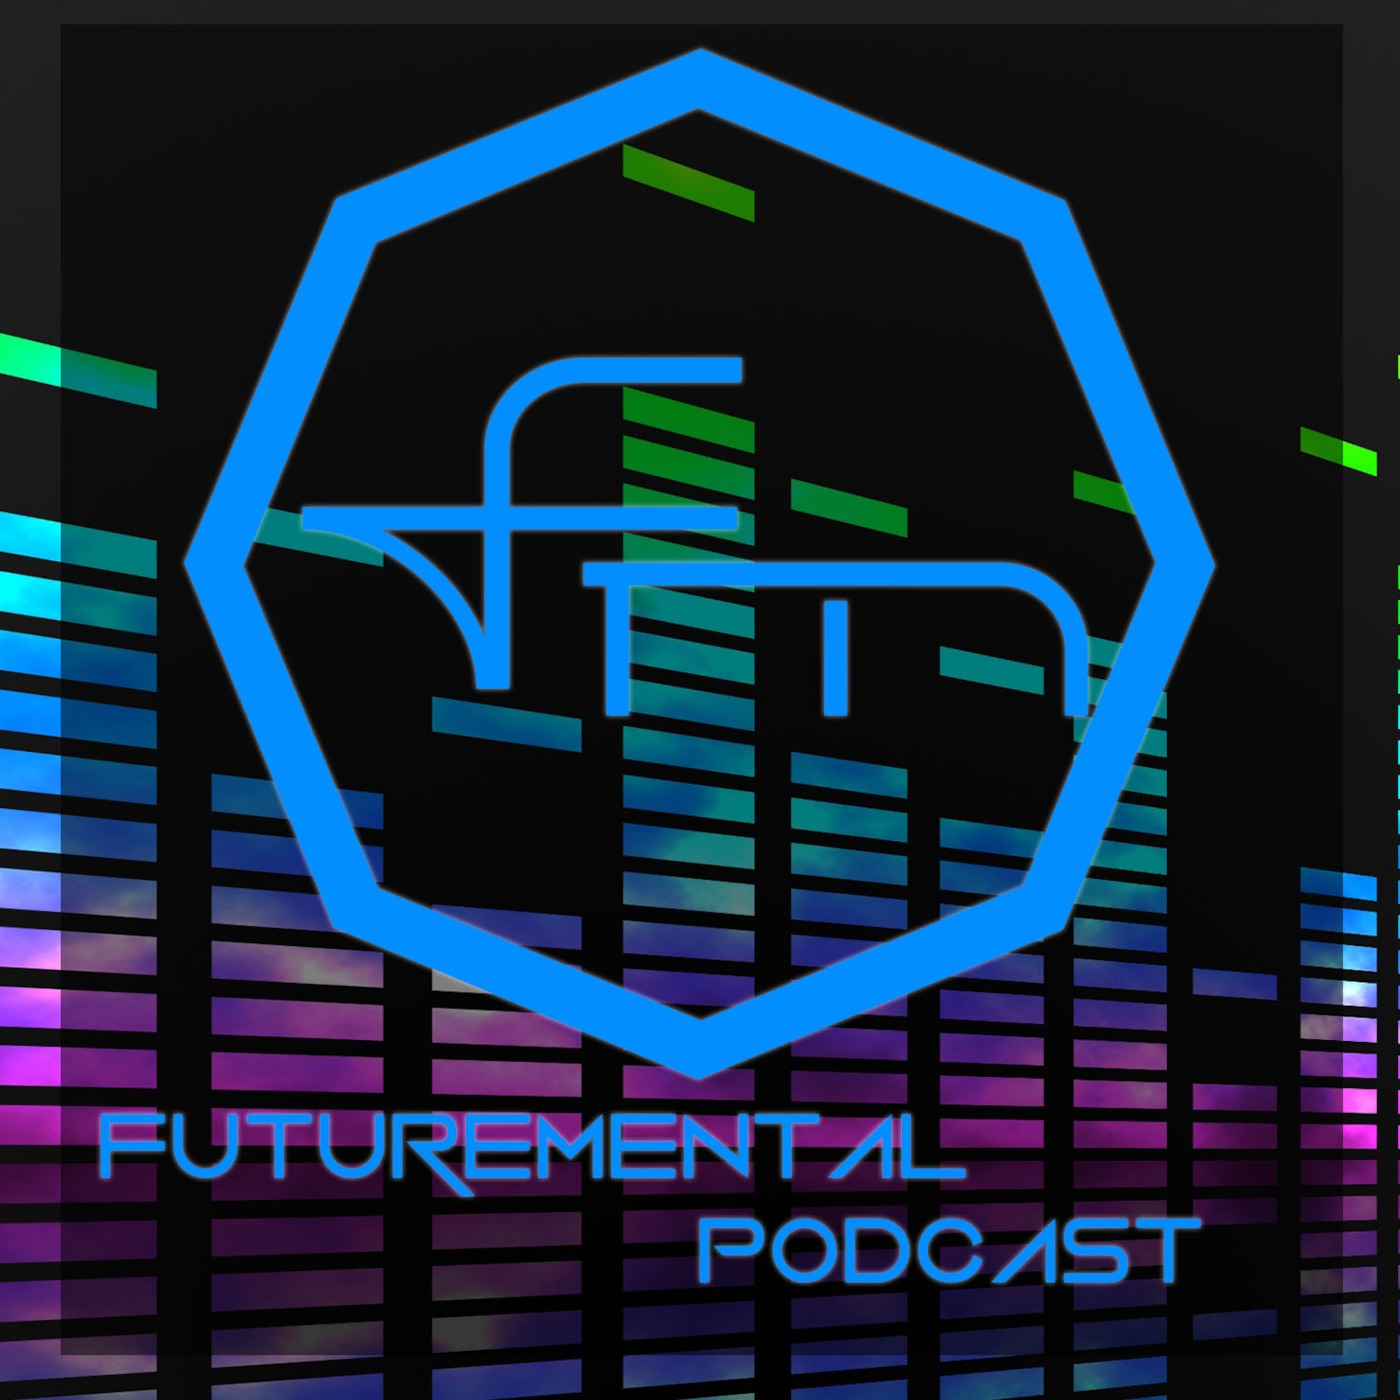 Futuremental Podcast